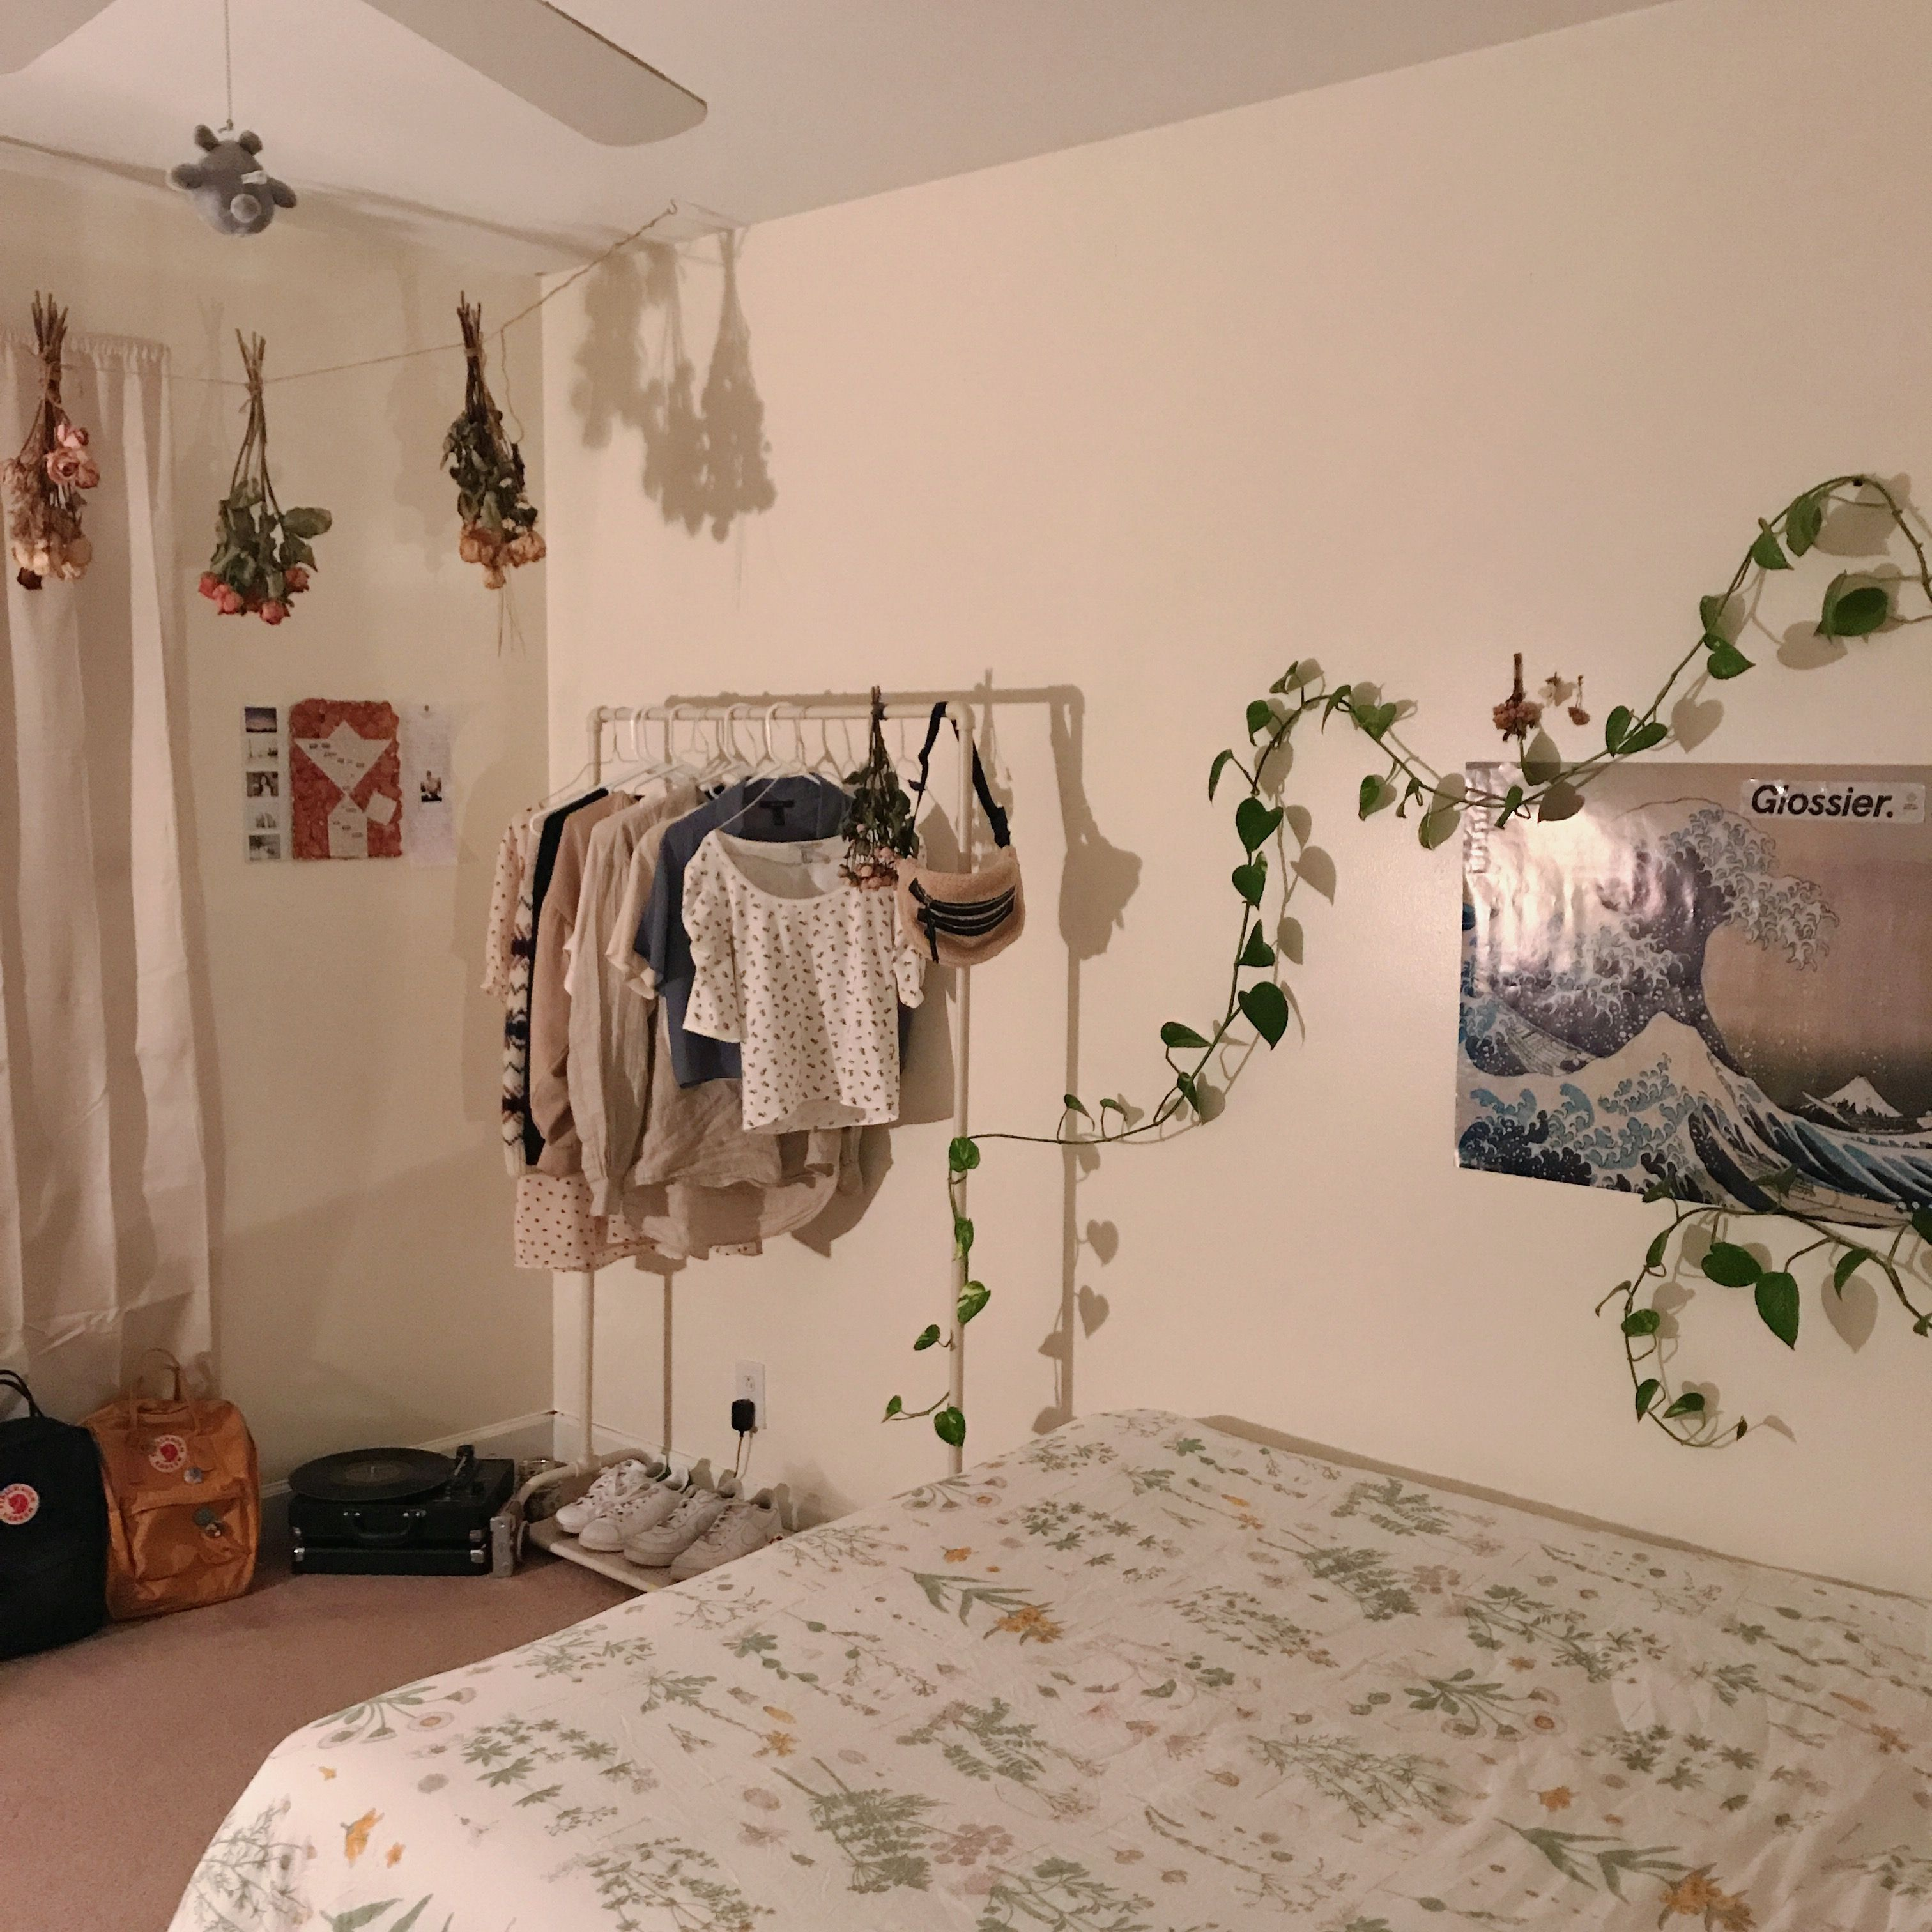 Softflowers also room pinterest bedroom and decor rh